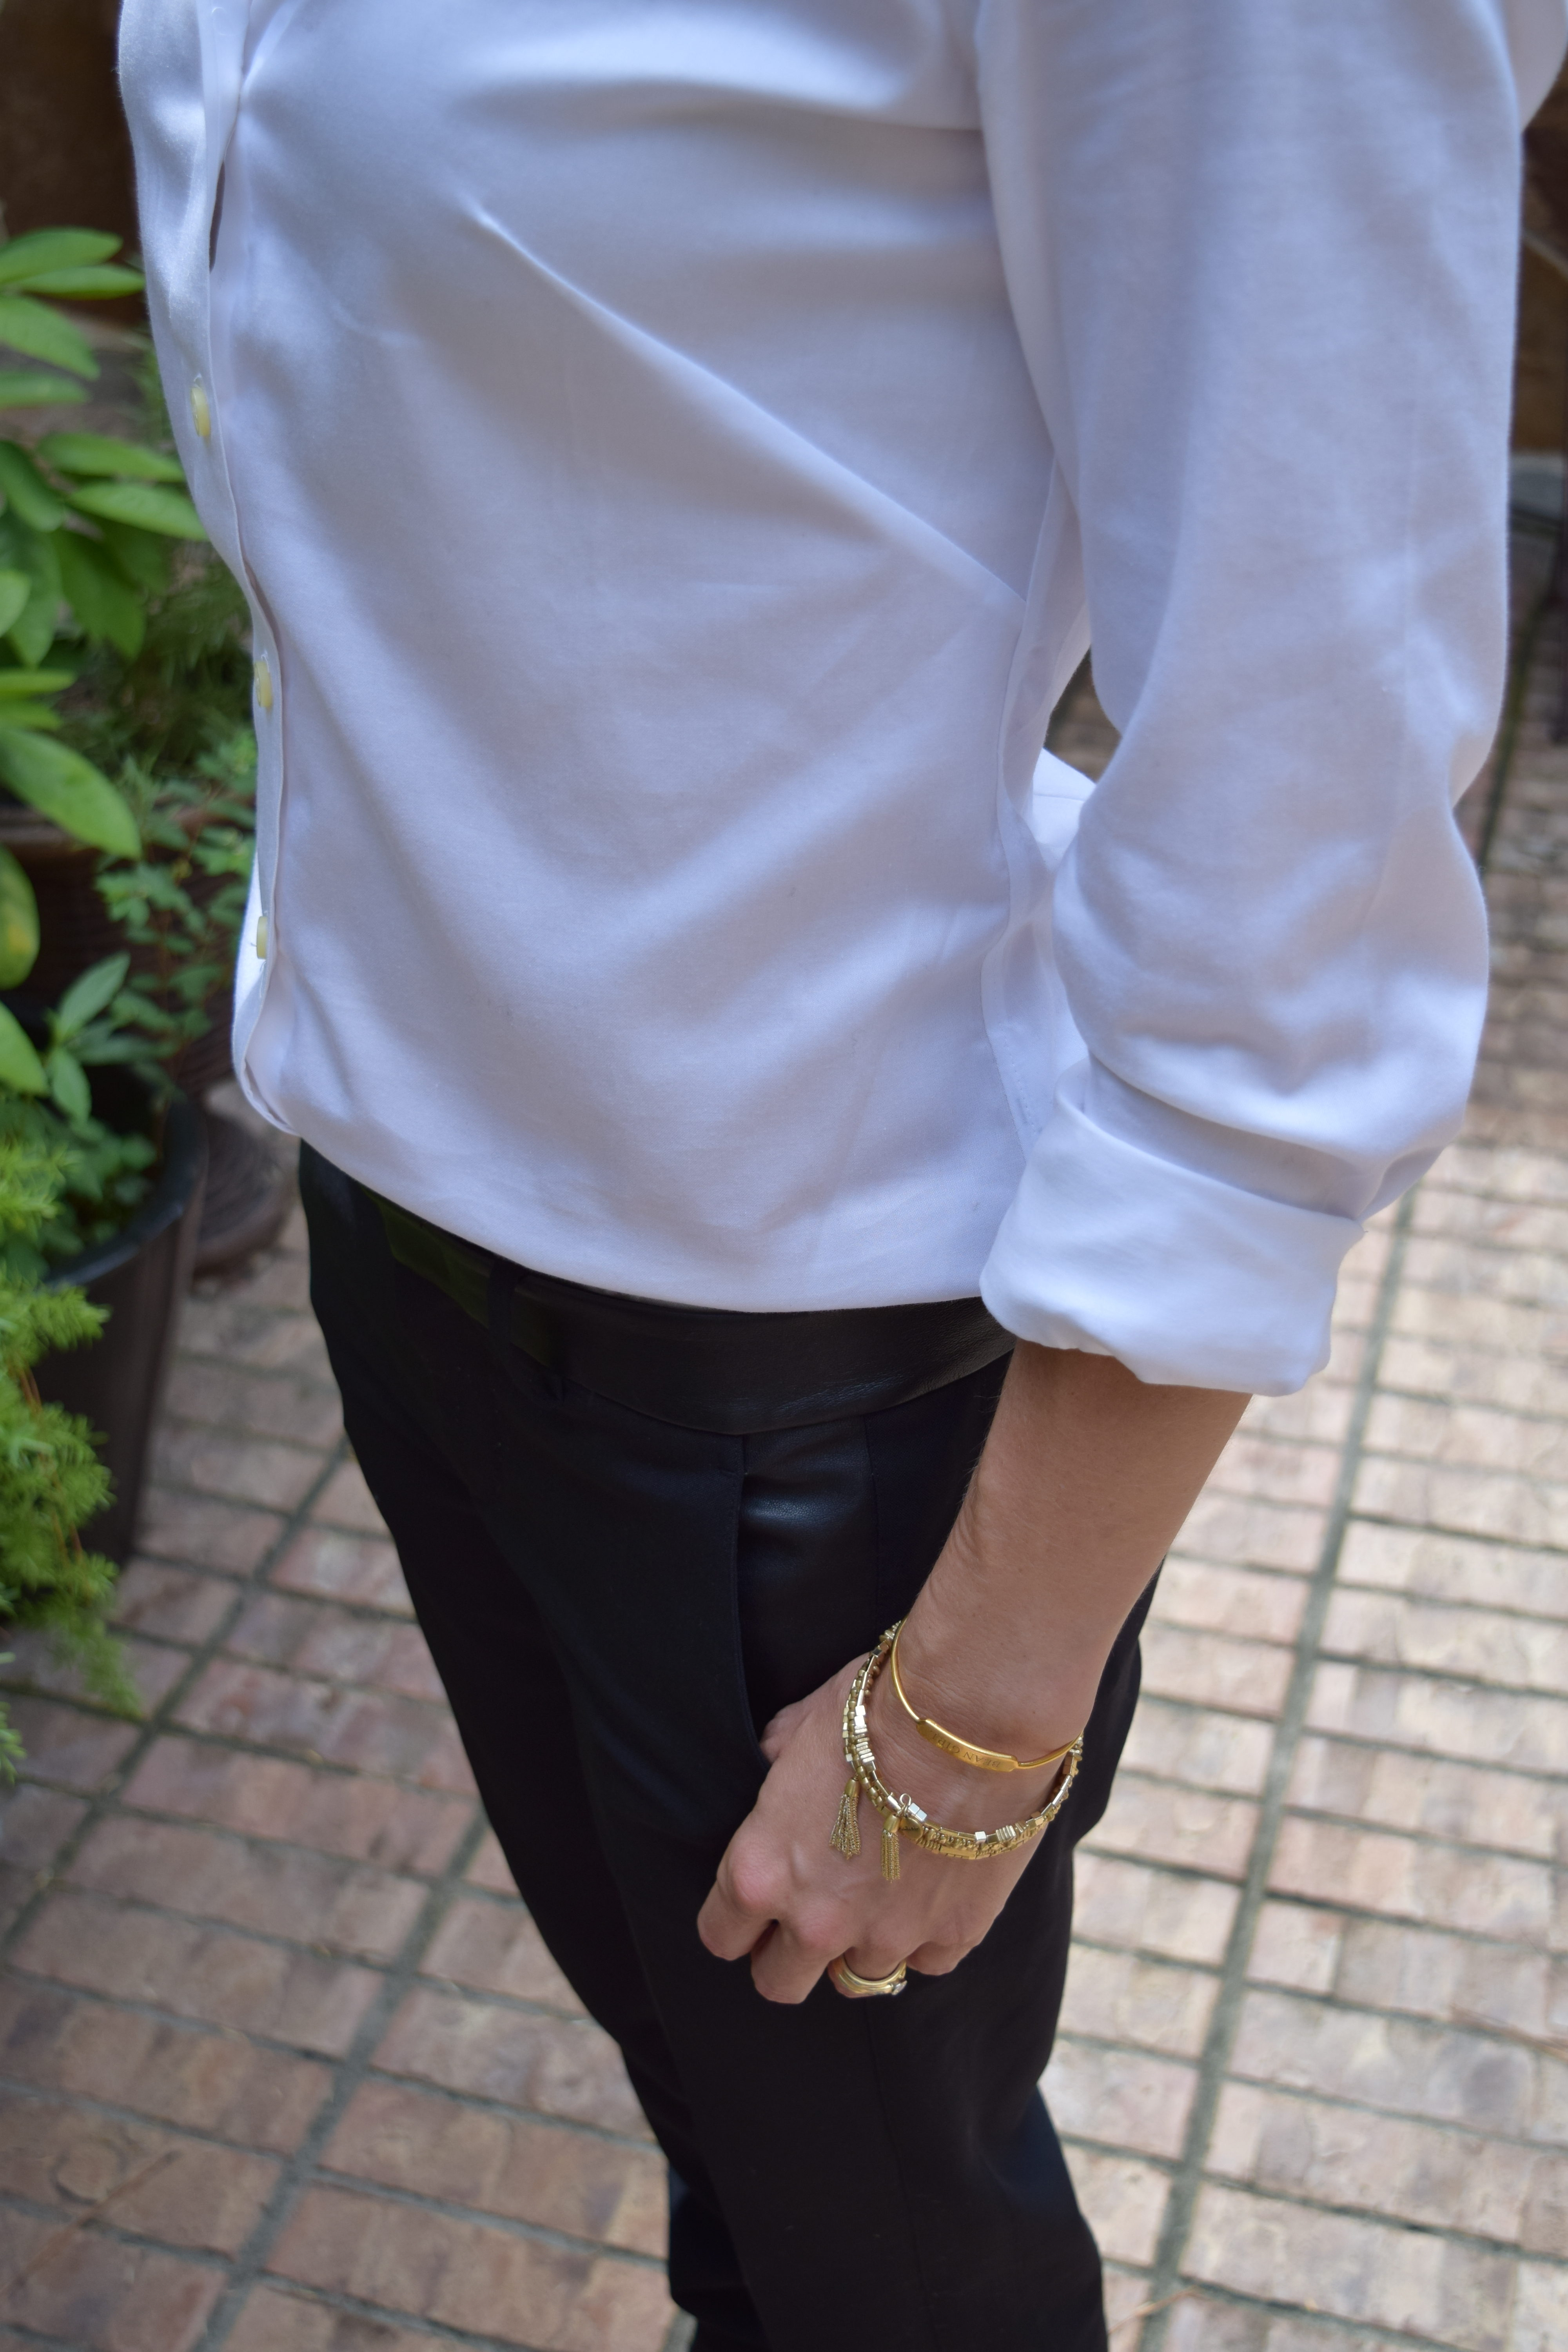 white, dress shirt, button up, method39, how to wear it, versatility, classic, layers, dress up